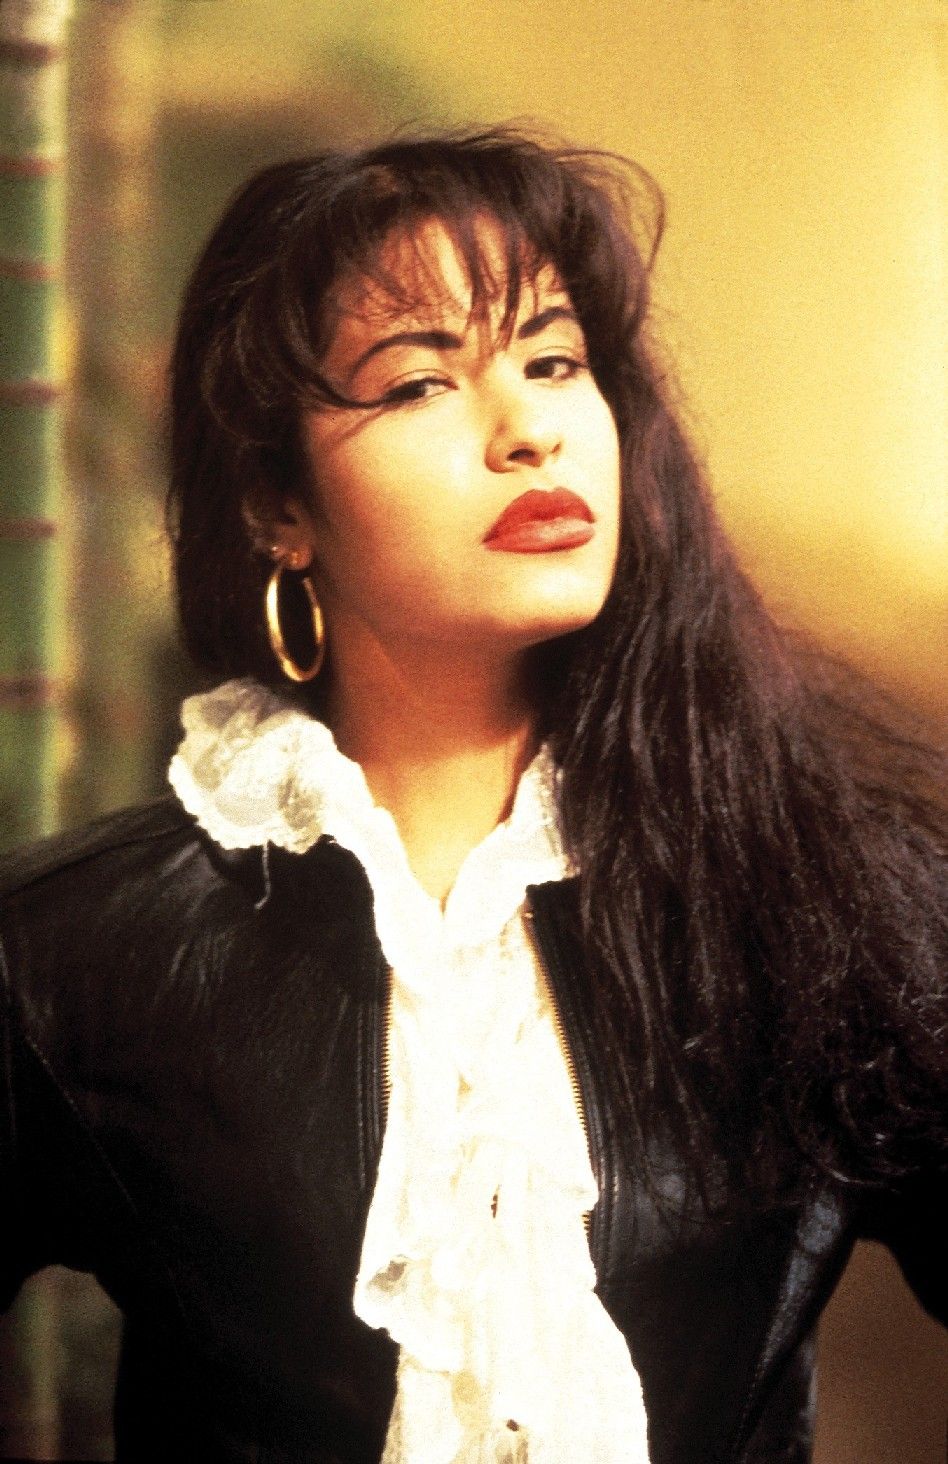 selena quintanilla perez Find and save ideas about selena quintanilla outfits on pinterest | see more ideas about selena quintanilla, selena quintanilla perez and selena costume.